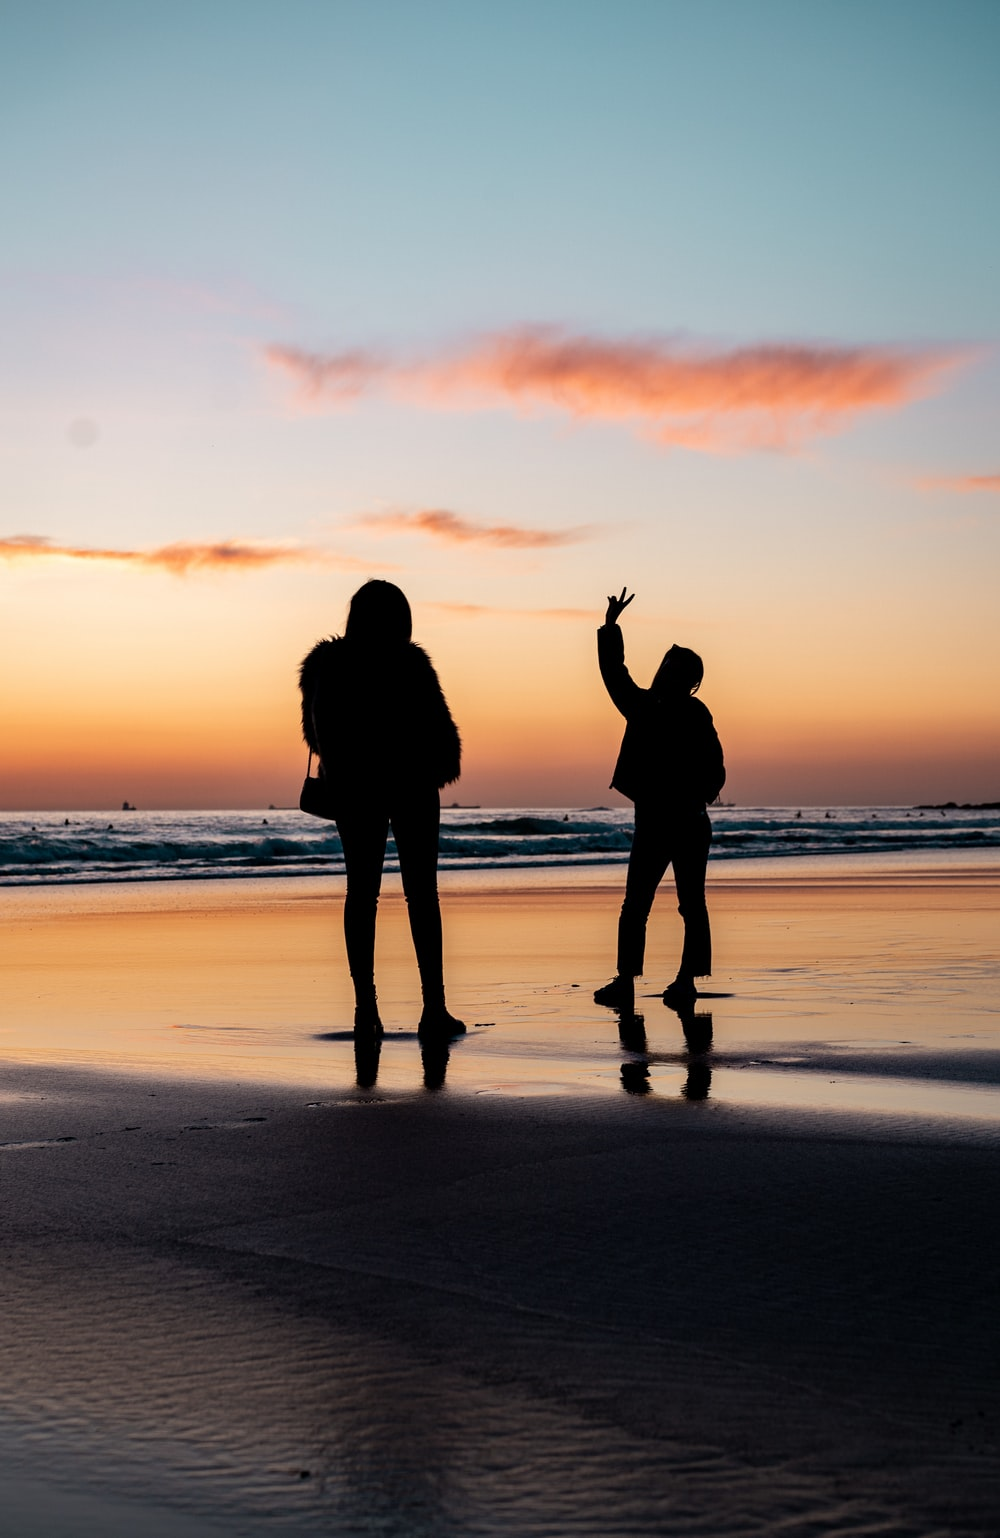 silhouette of 2 person standing on beach during sunset